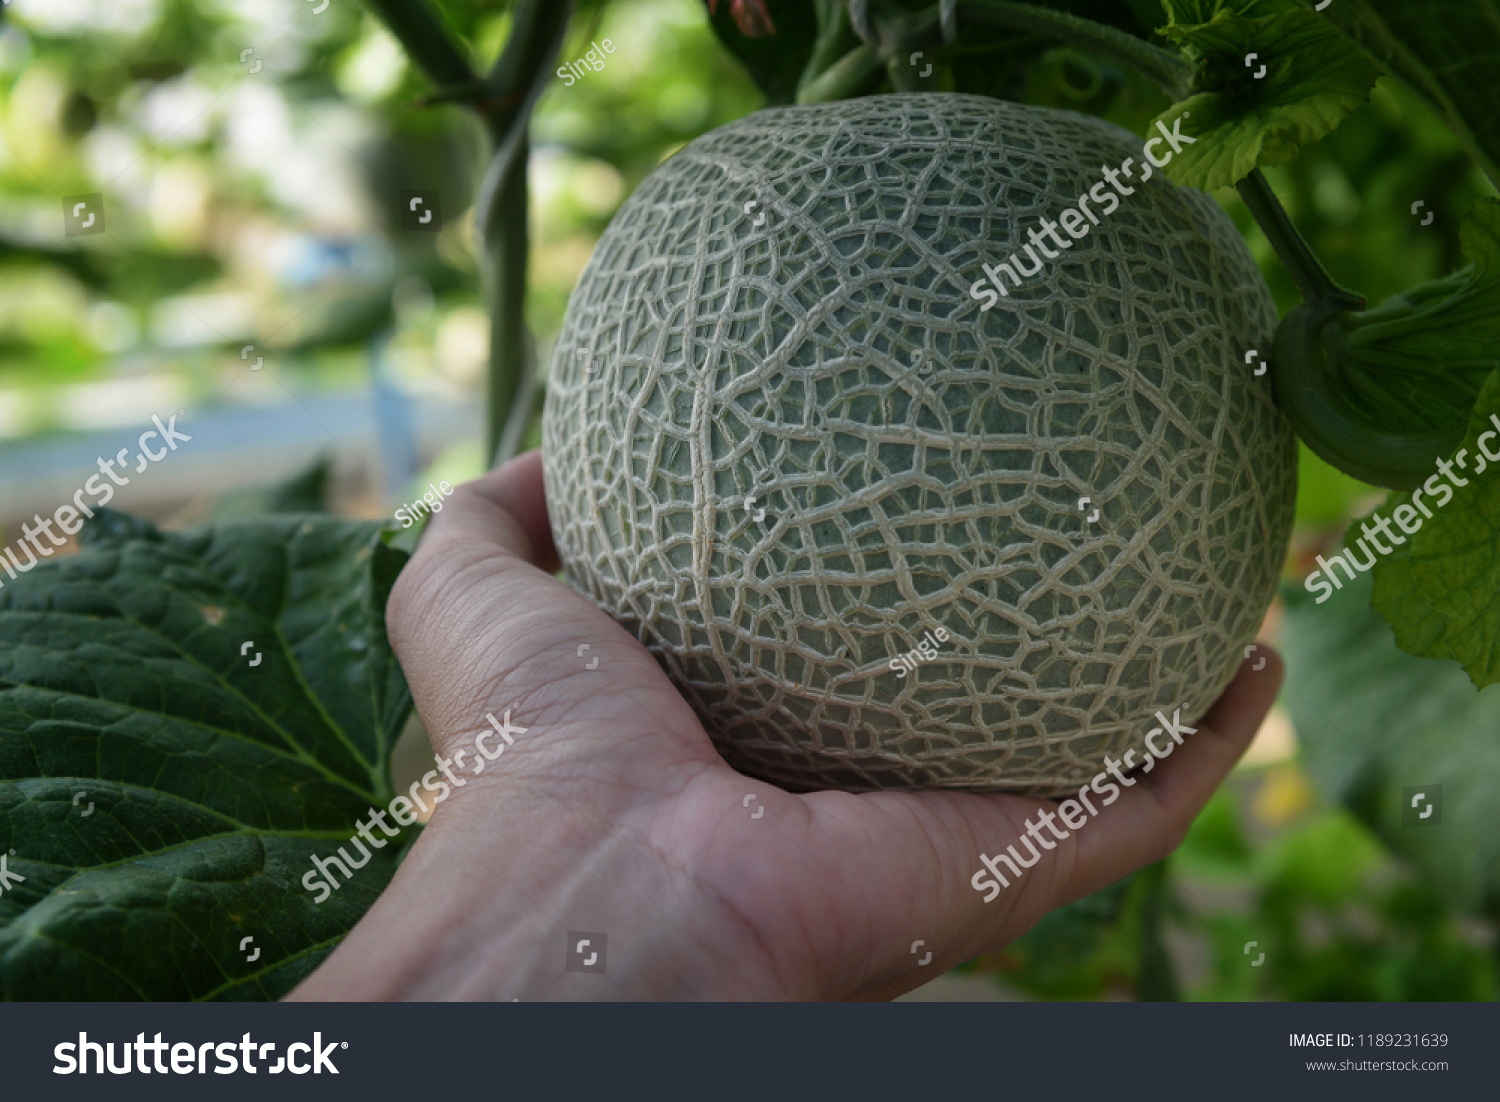 Hand Holding Melons Green Melons Cantaloupe Stock Photo Edit Now 1189231639 One biologist performing a necropsy on a dead bear found a whole. shutterstock